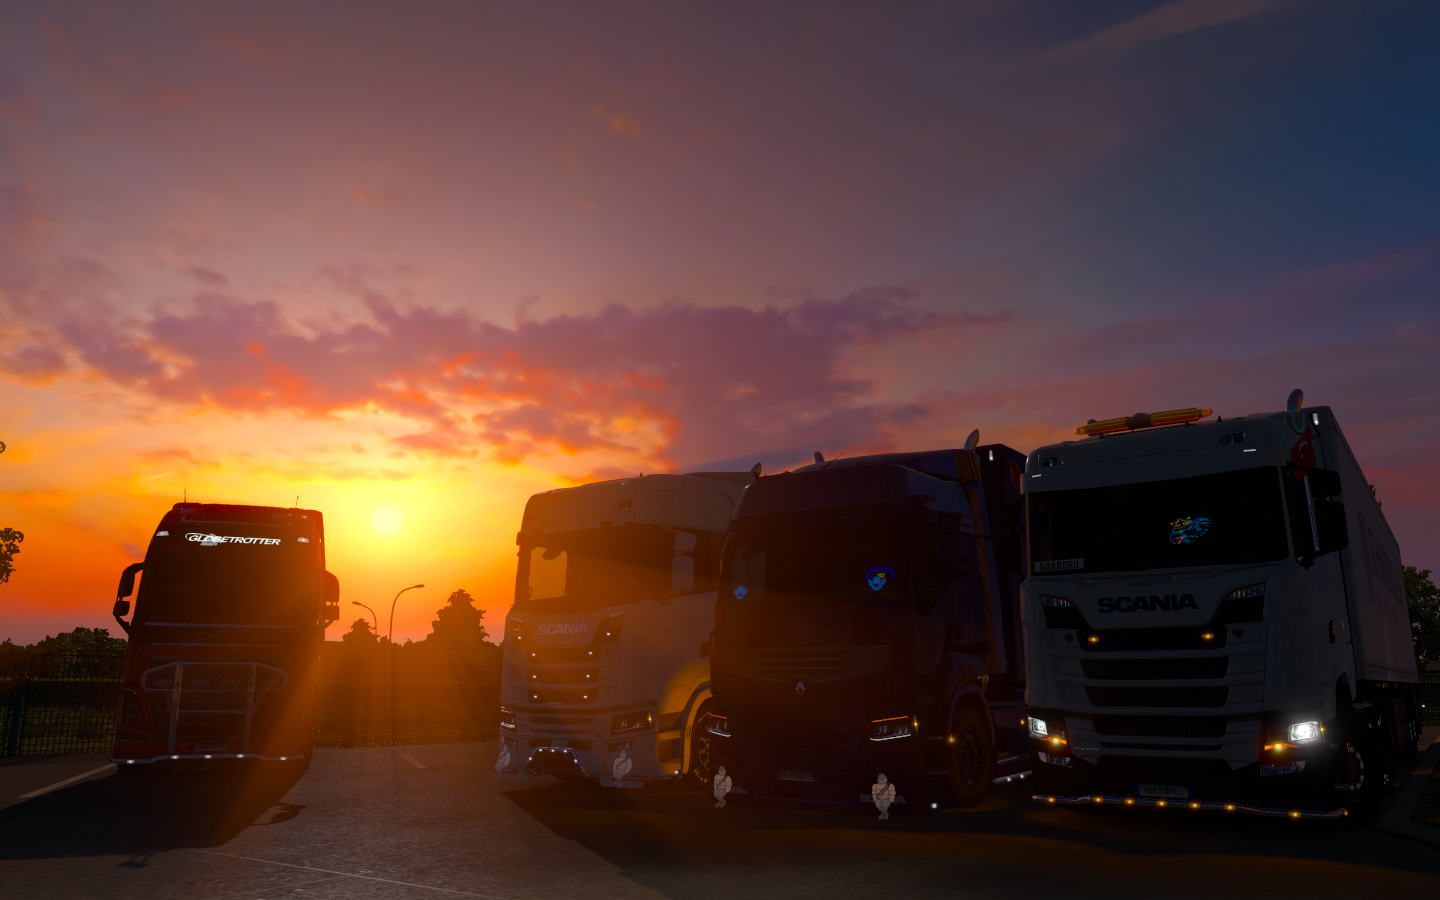 ets2_20190718_015652_00.png